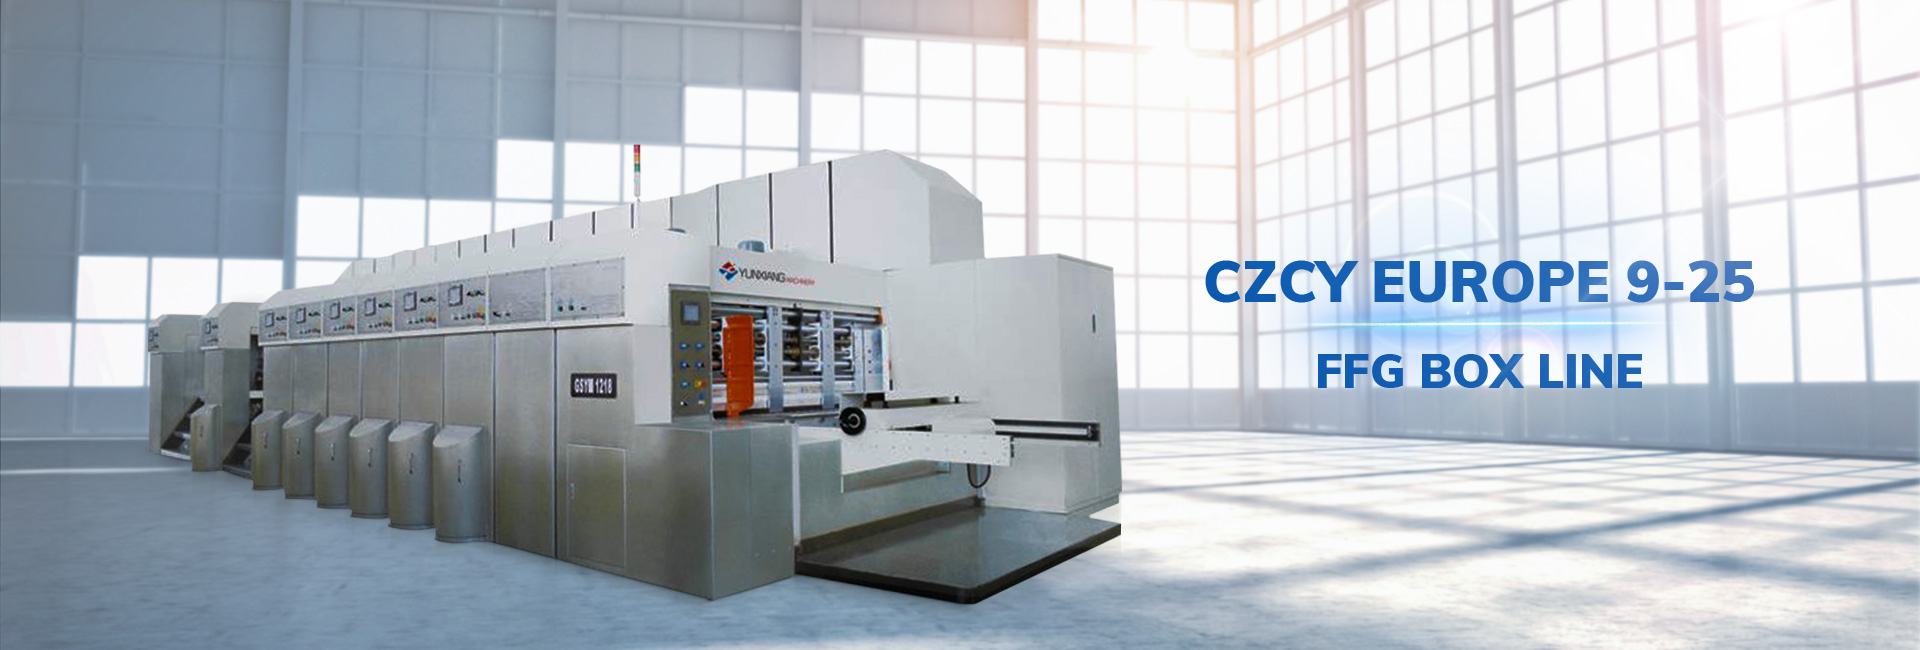 Cangzhou Chengyi Carton milina Co., Ltd